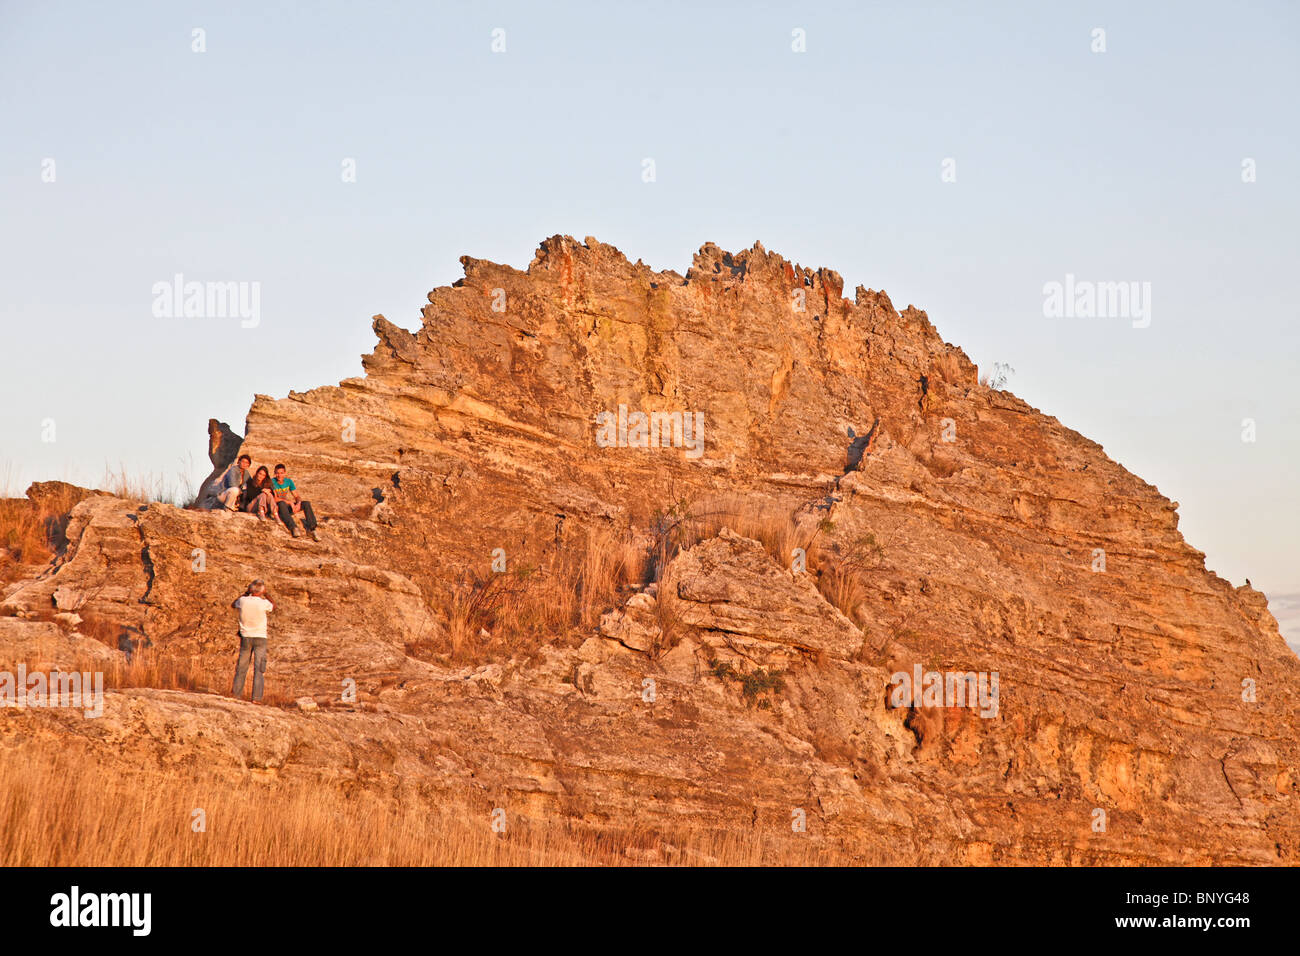 Man taking a picture of a group of people against a sandtone massif at sunset near the Window of Isalo National - Stock Image